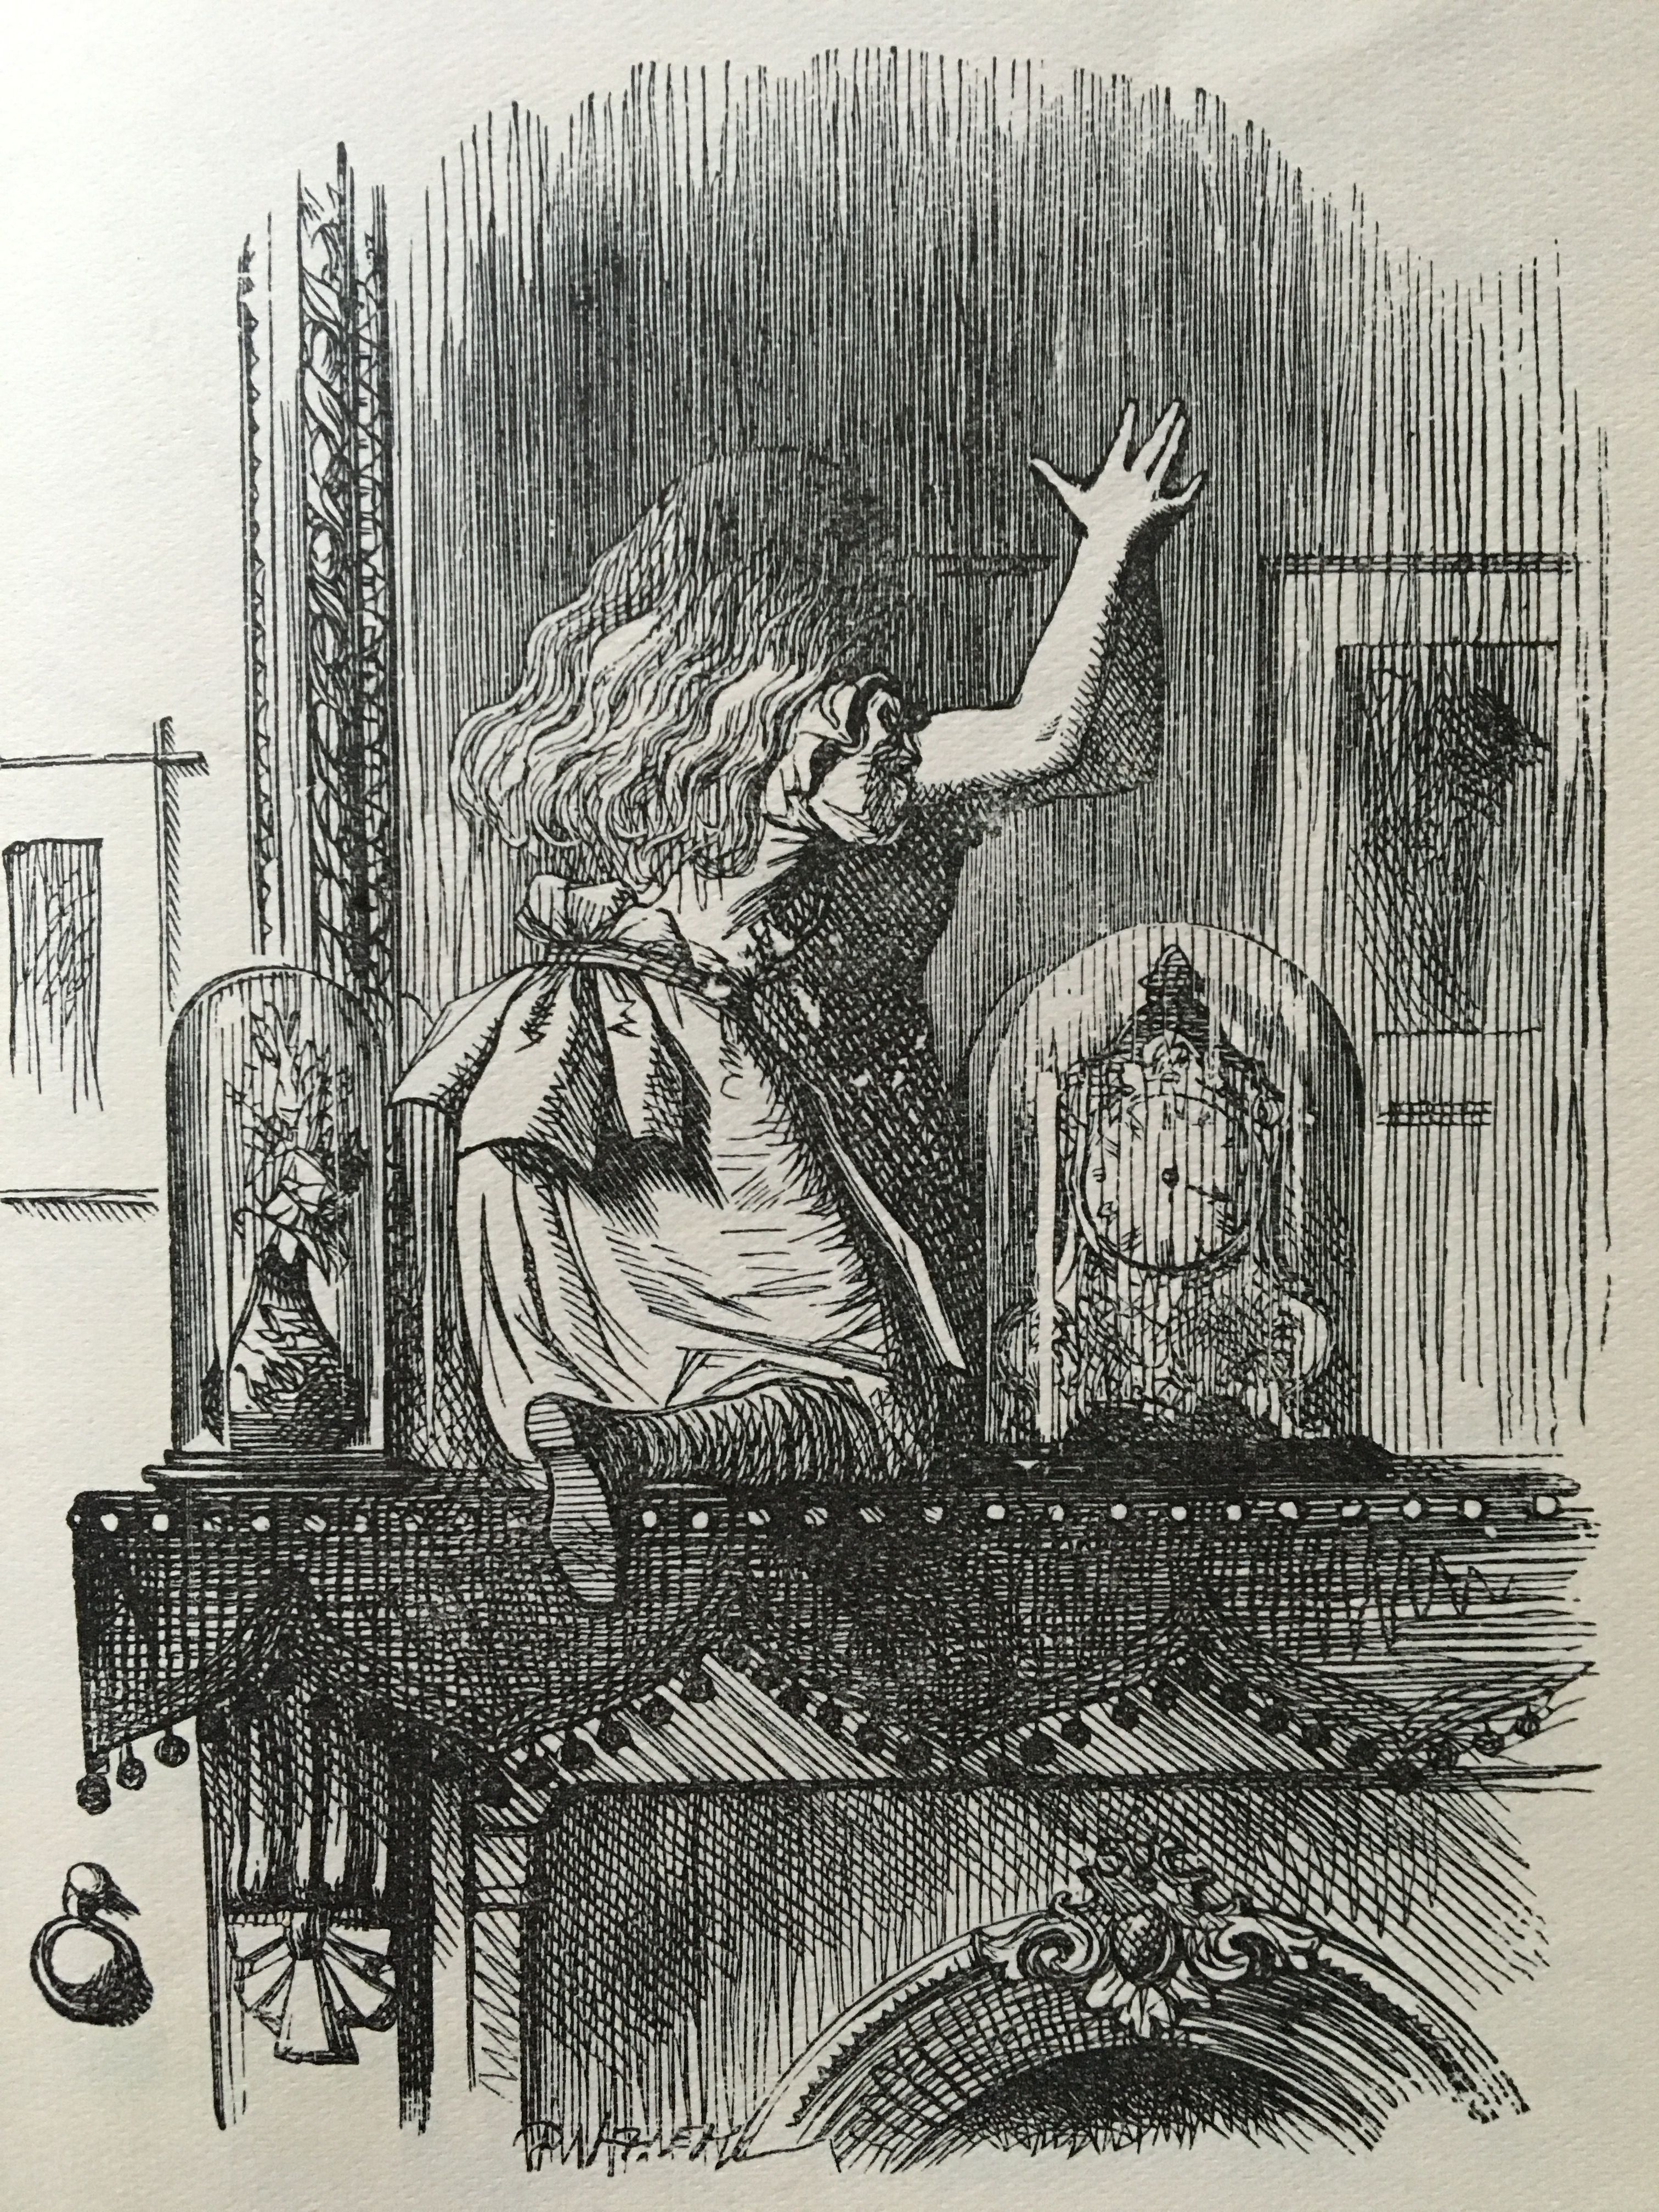 John teniell illustration from alices adventures in